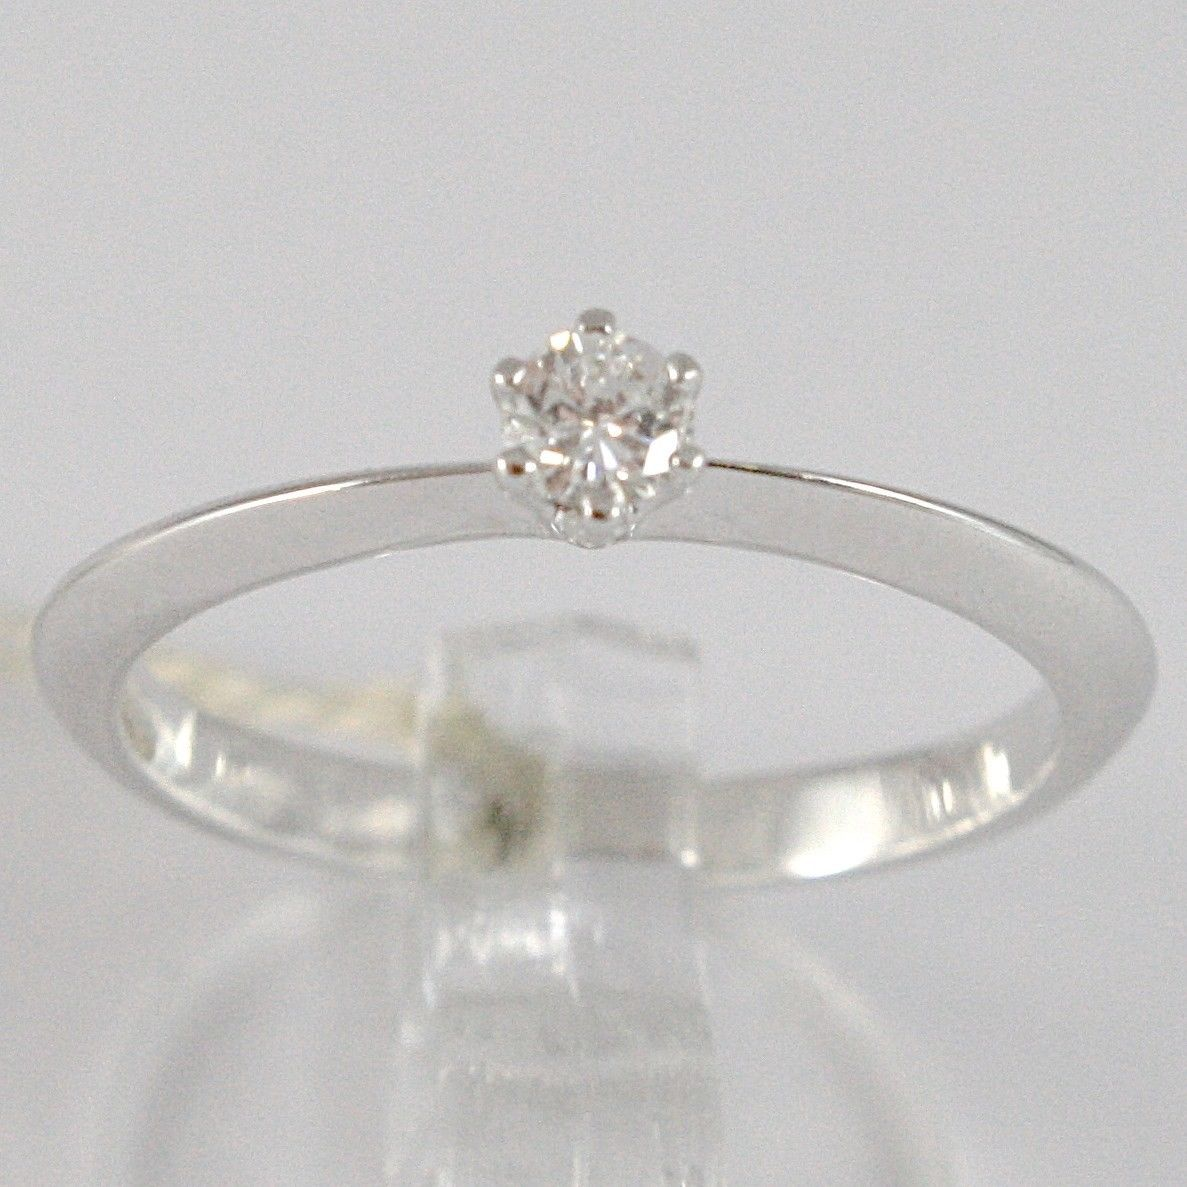 WHITE GOLD RING 750 18K, SOLITAIRE, STEM TIP, DIAMOND, CARAT 0.10